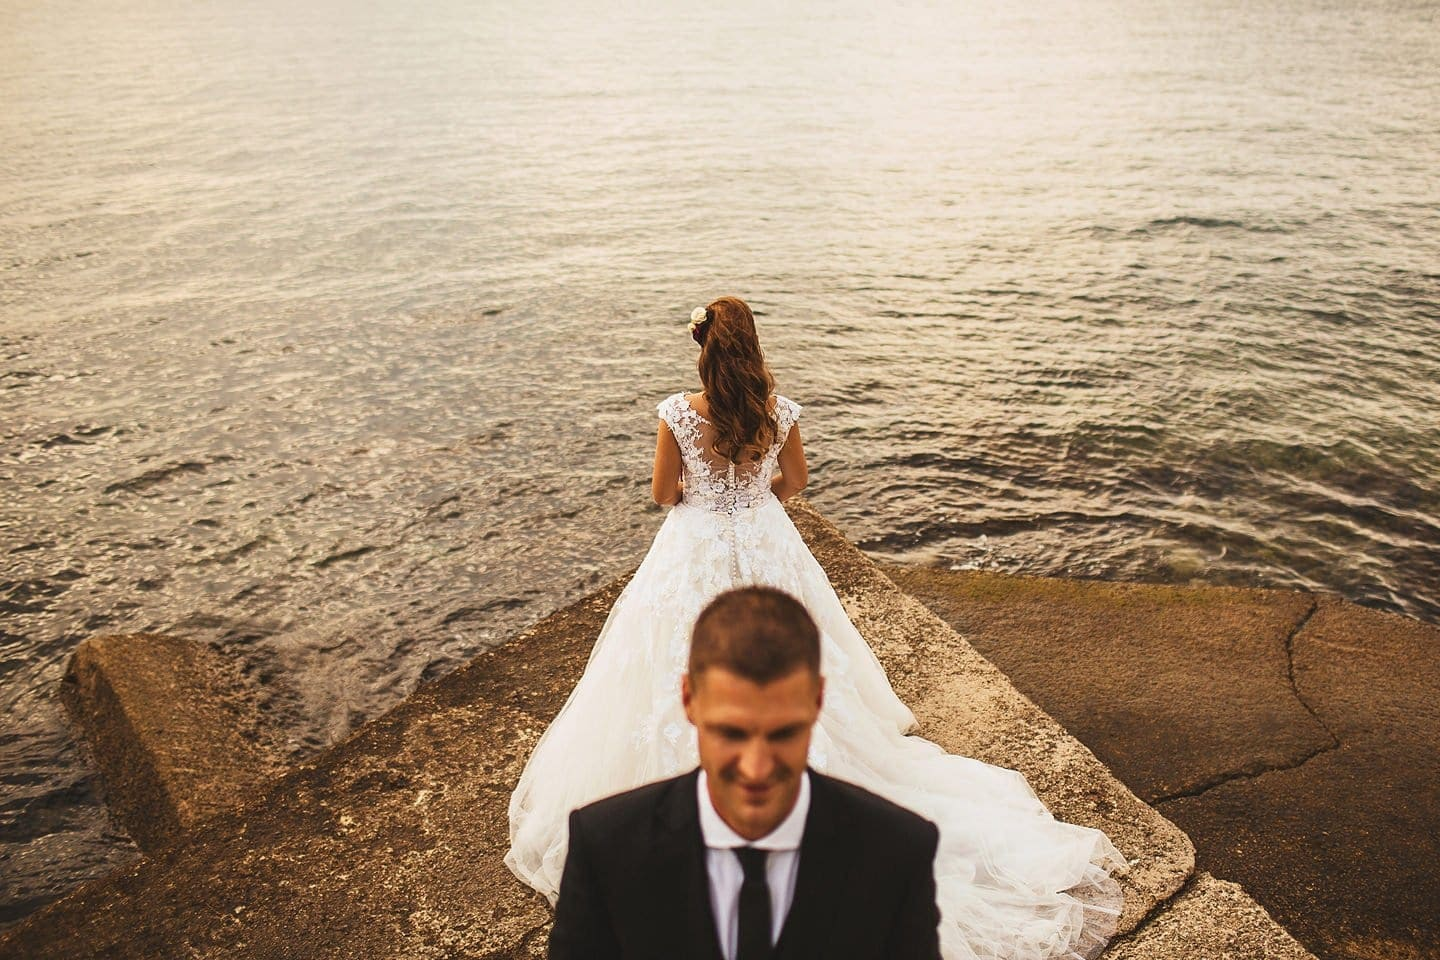 Best of wedding photography collection 2017 - by Aleks & Irena Kus 75